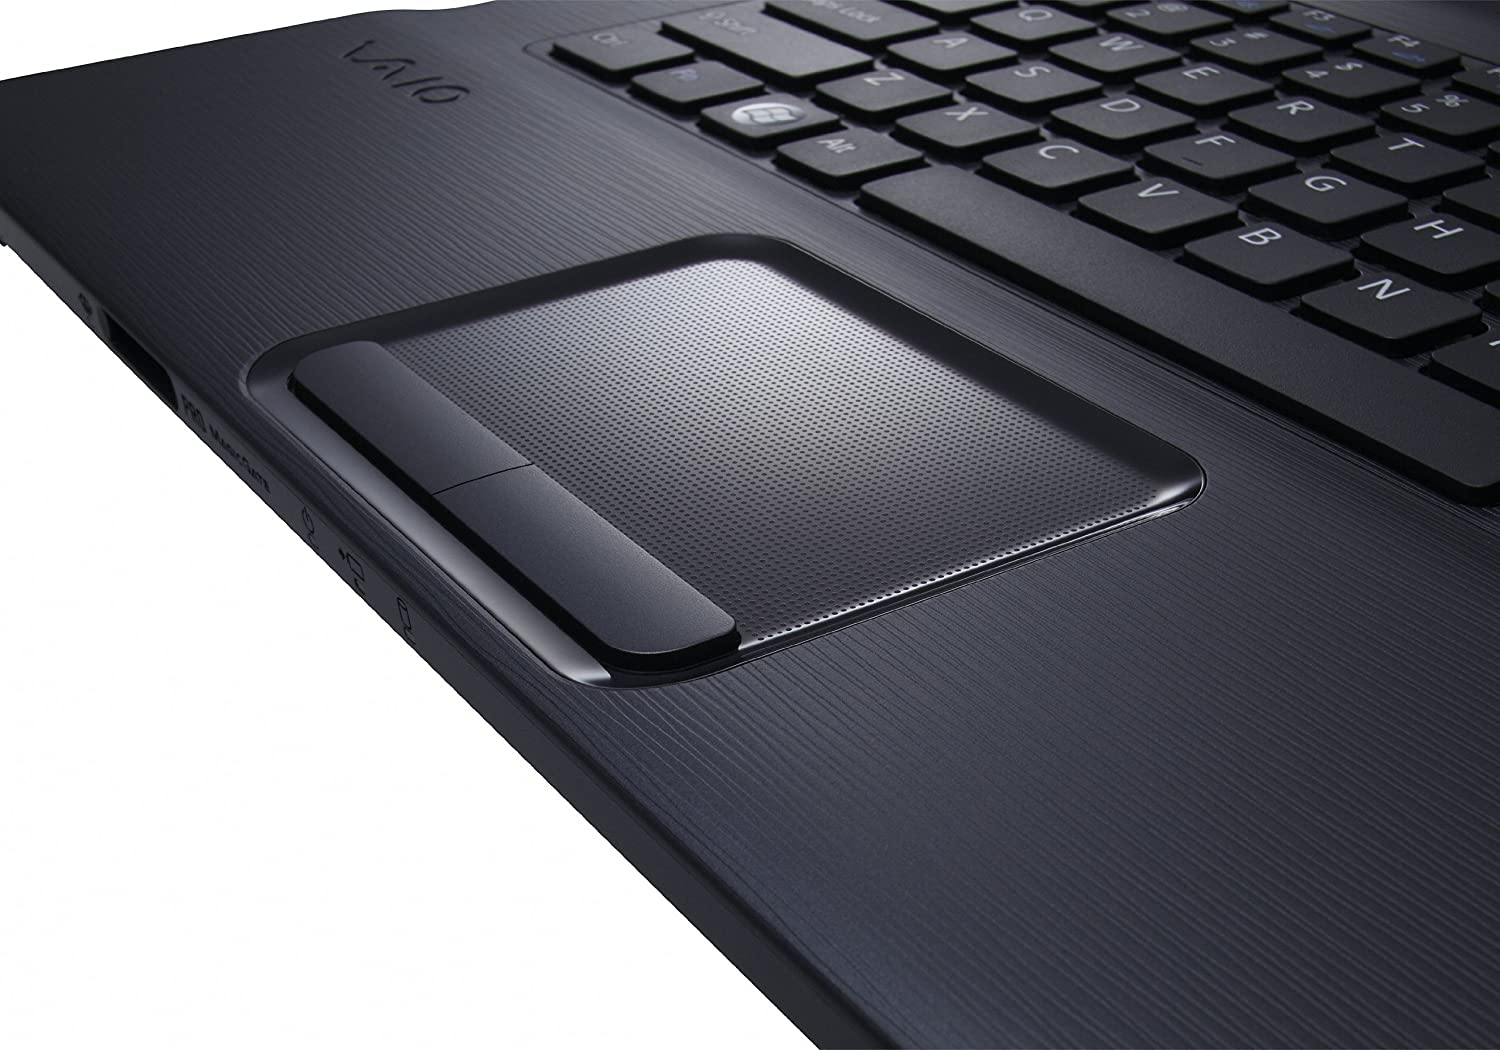 Amazon.com: Sony VAIO VGN-NW280F/B 15.5-Inch Black Laptop (Windows 7 Home Premium): Computers & Accessories